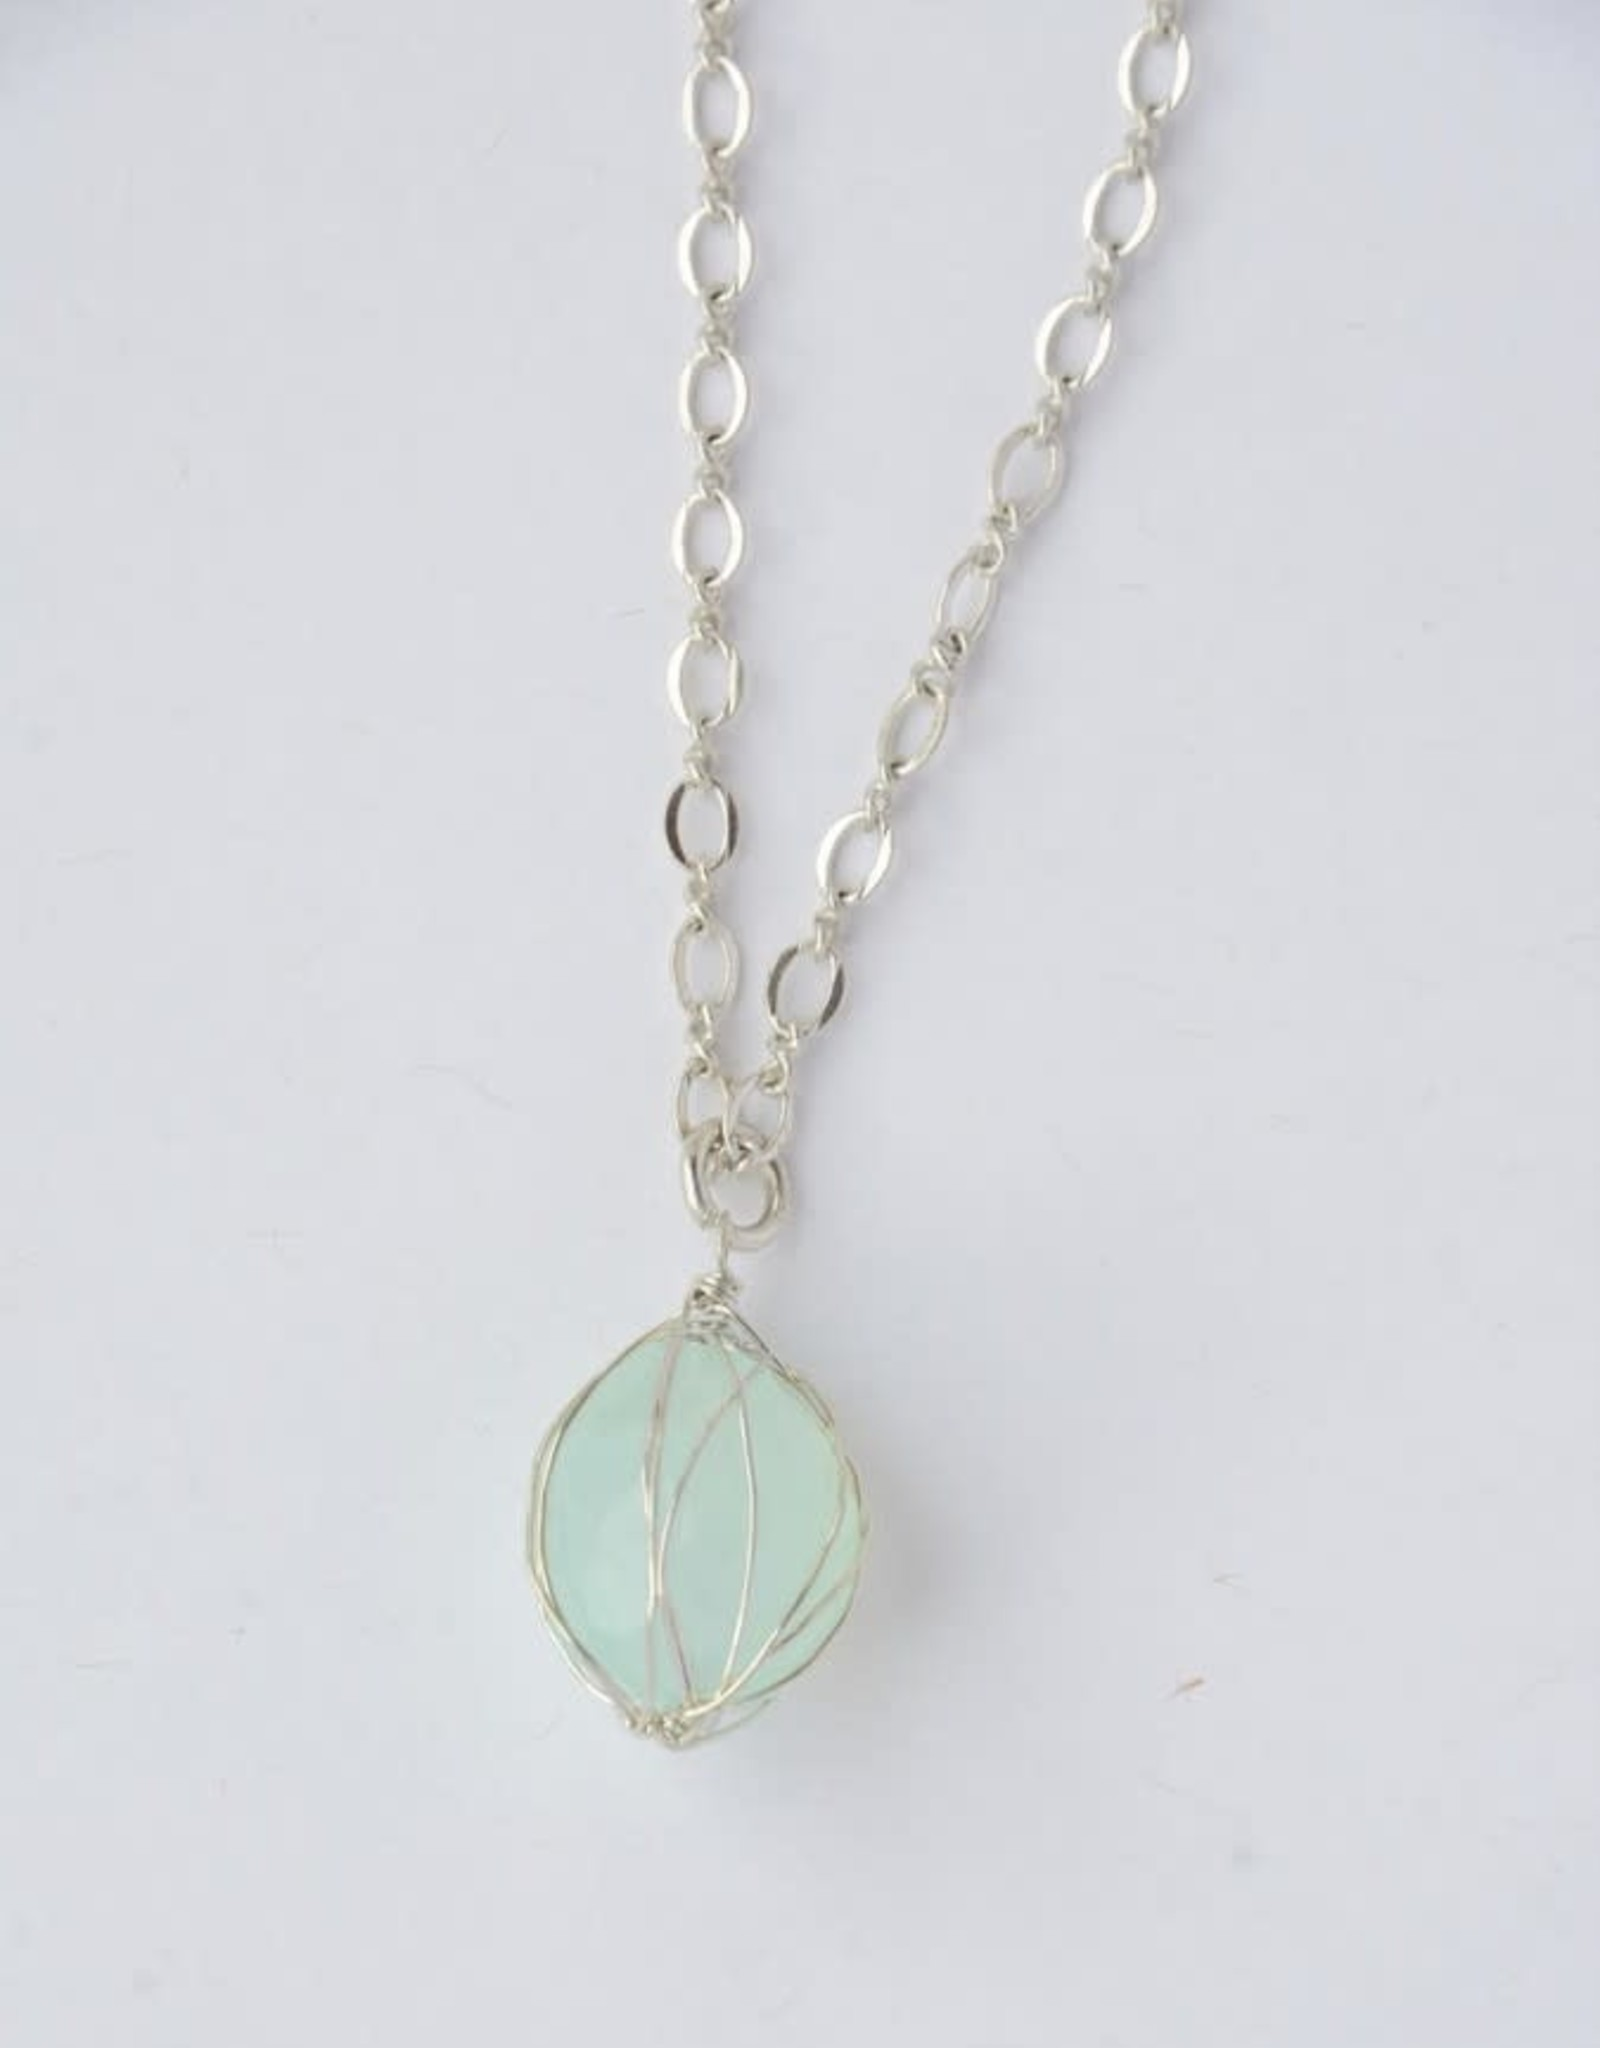 Teal Wrap Stone Necklace - Silver